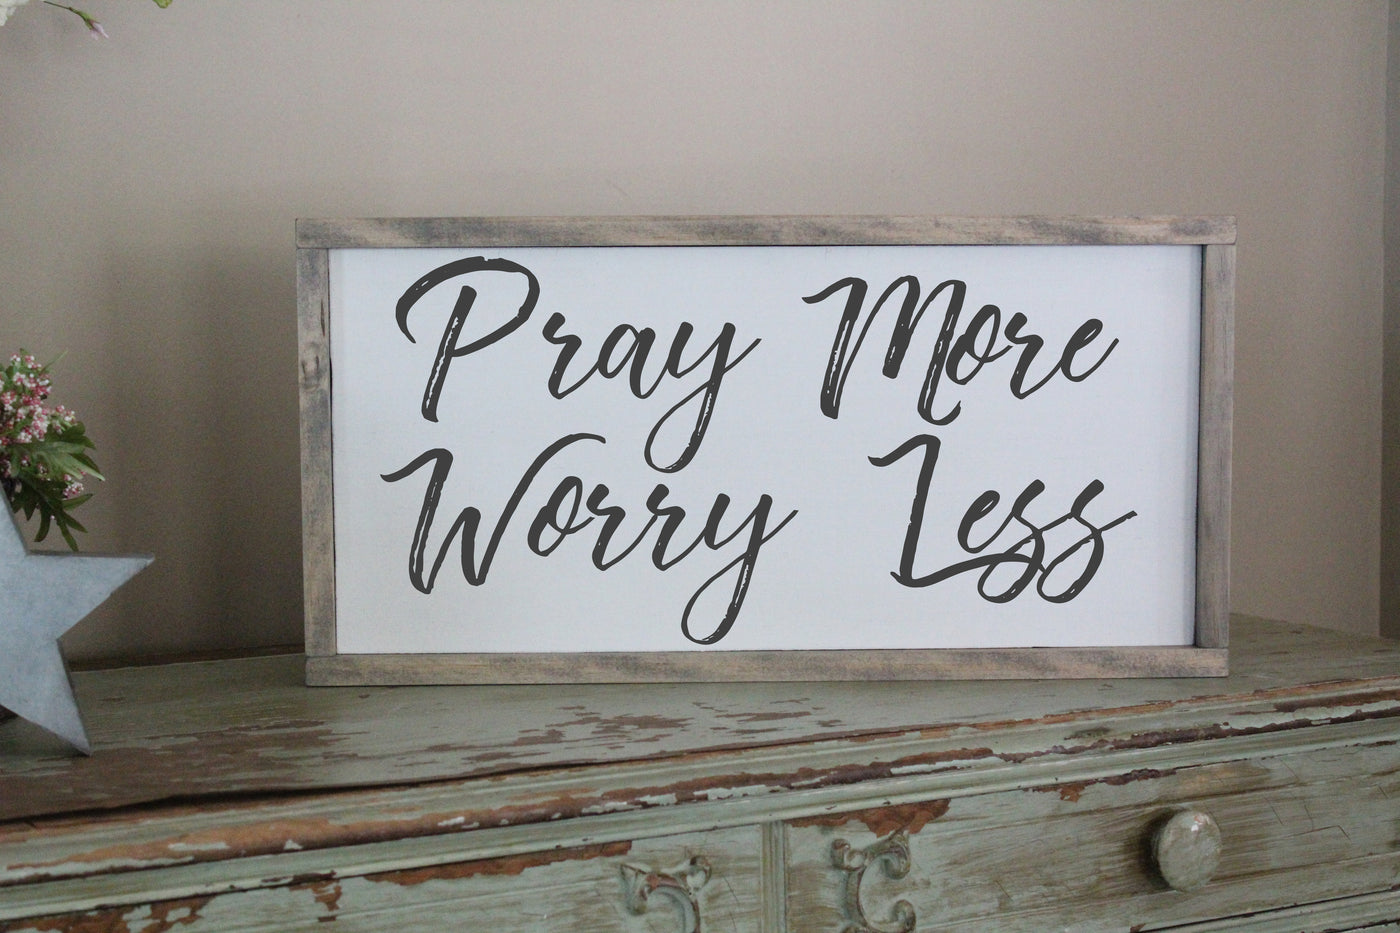 pray more worry less crafty mama gifts